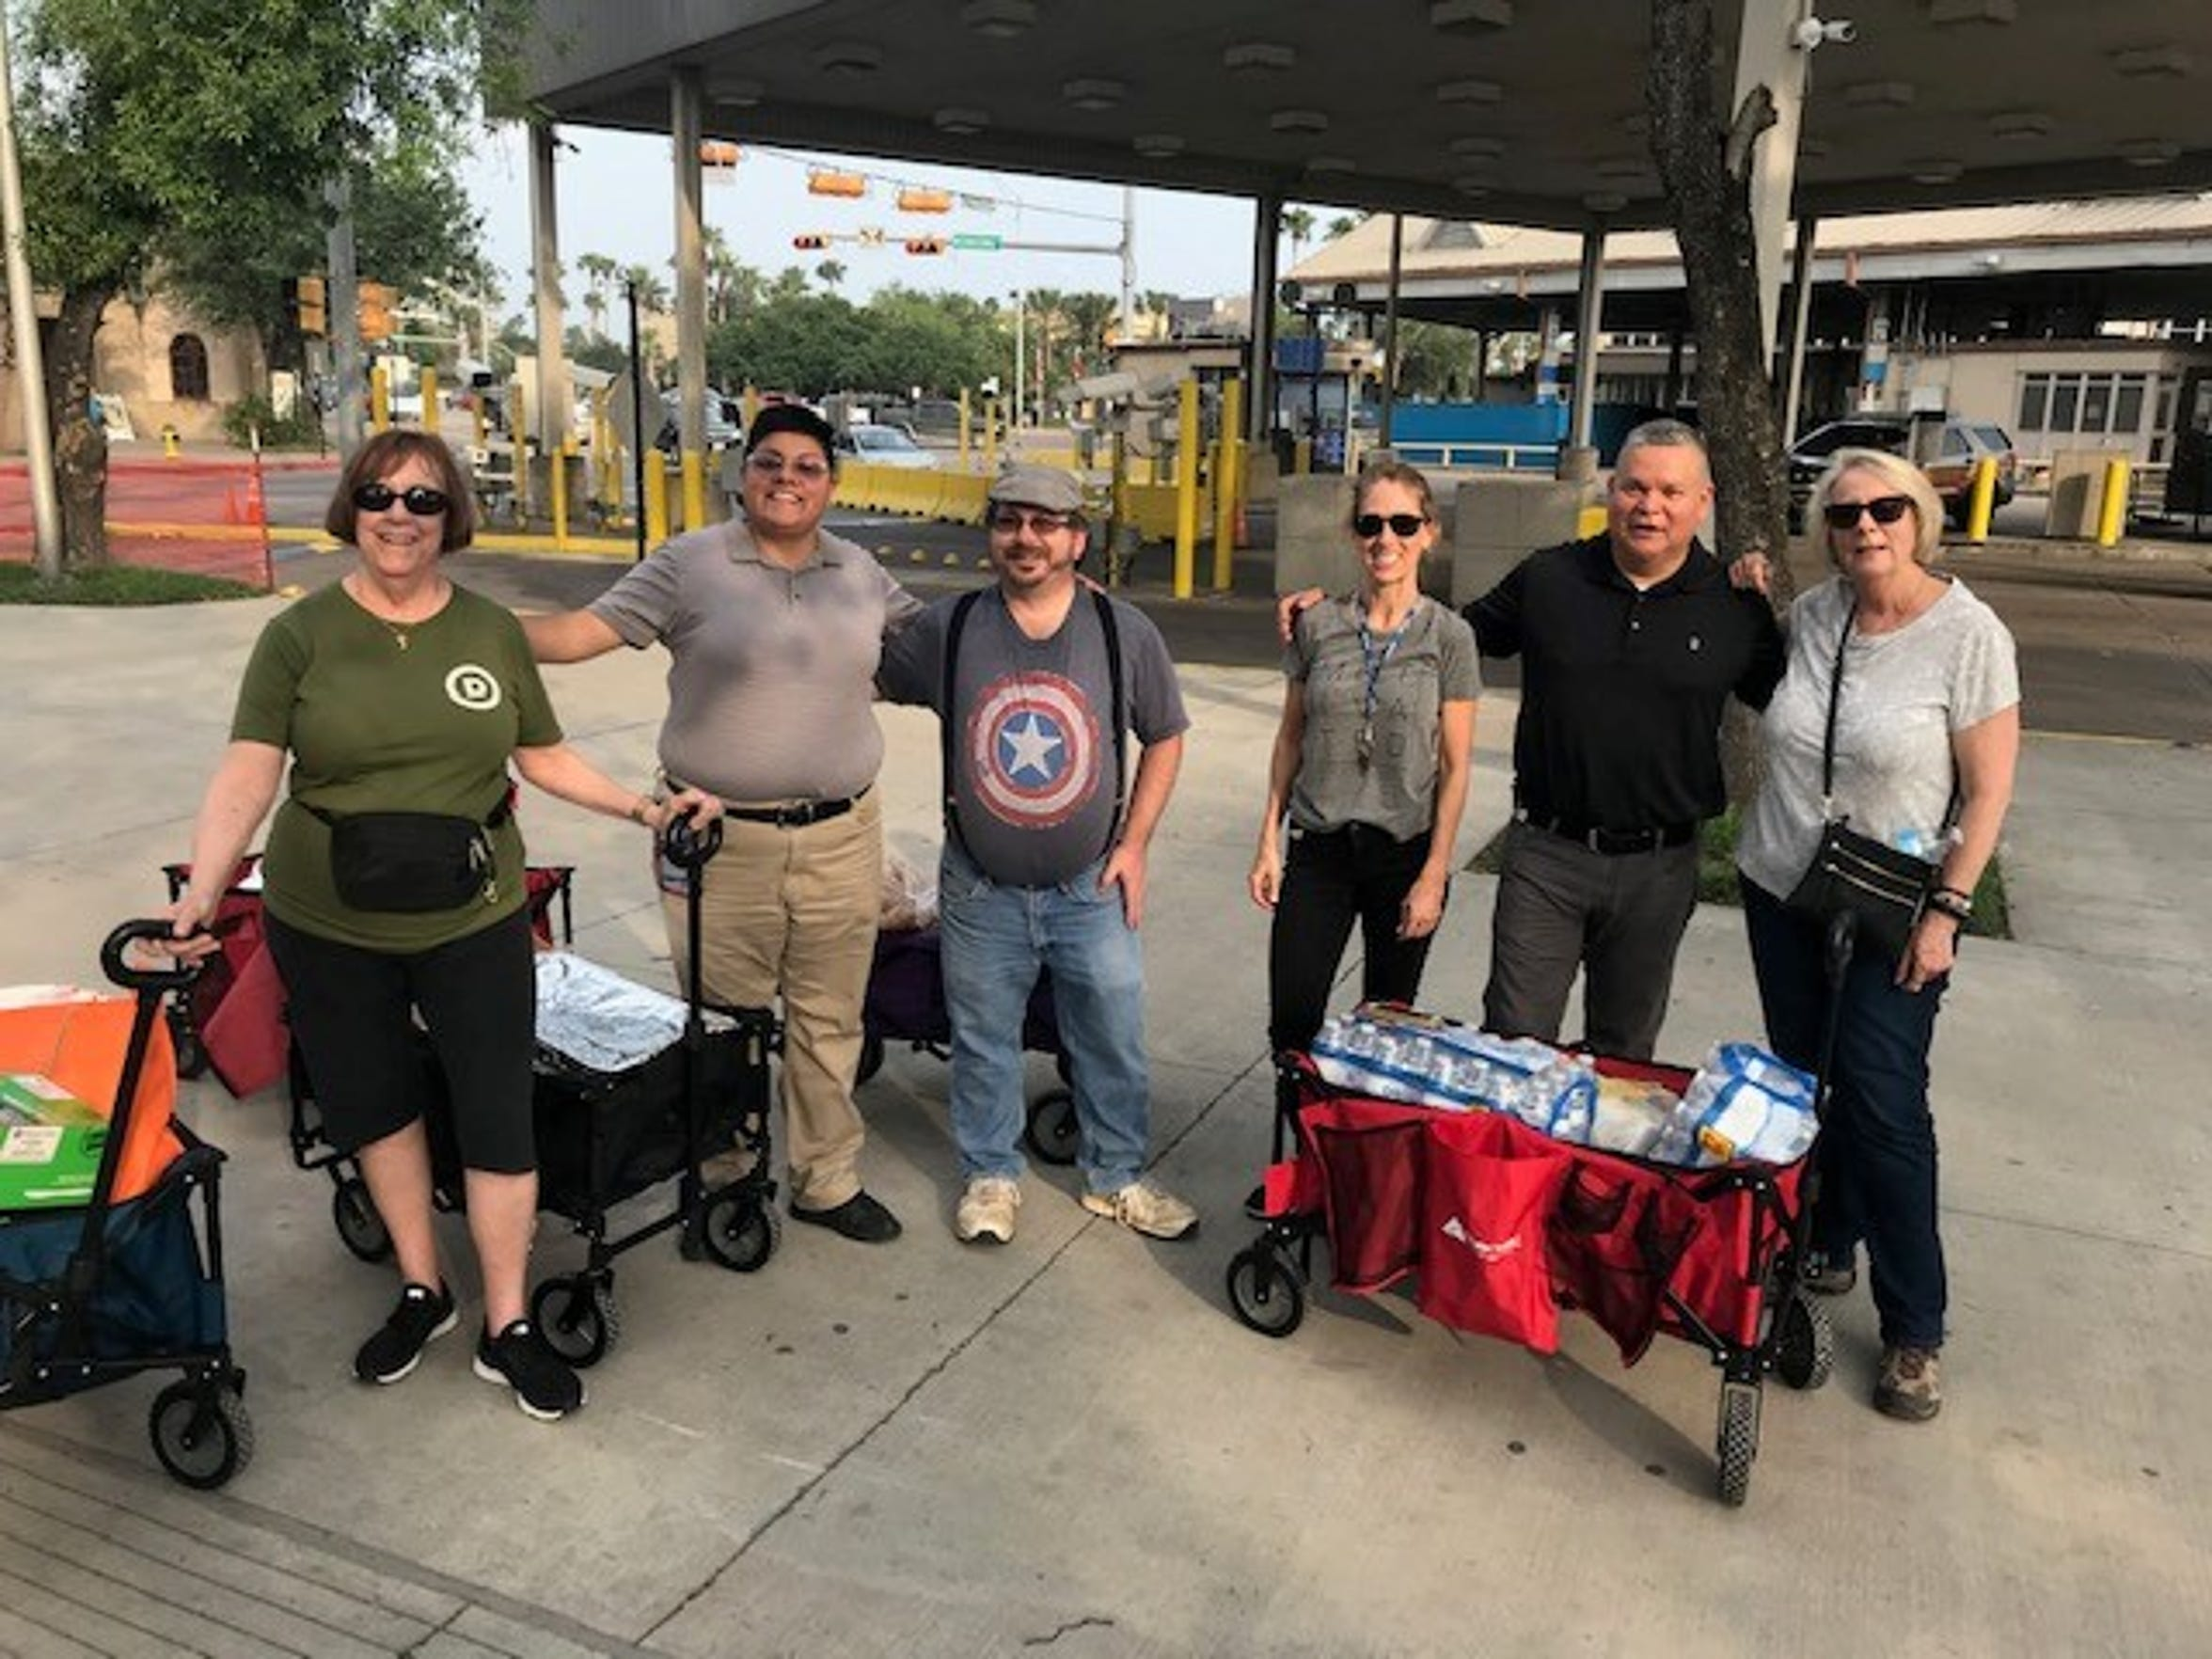 From left: Anne Rioux, Christina Escobedo, Emmett Blake, Diane Beckman, Mike Benavides and Ann Finch at the bus station in Brownsville, Texas, prepare to bring meals to asylum seekers in Matamoros, Mexico, on April 4, 2018.